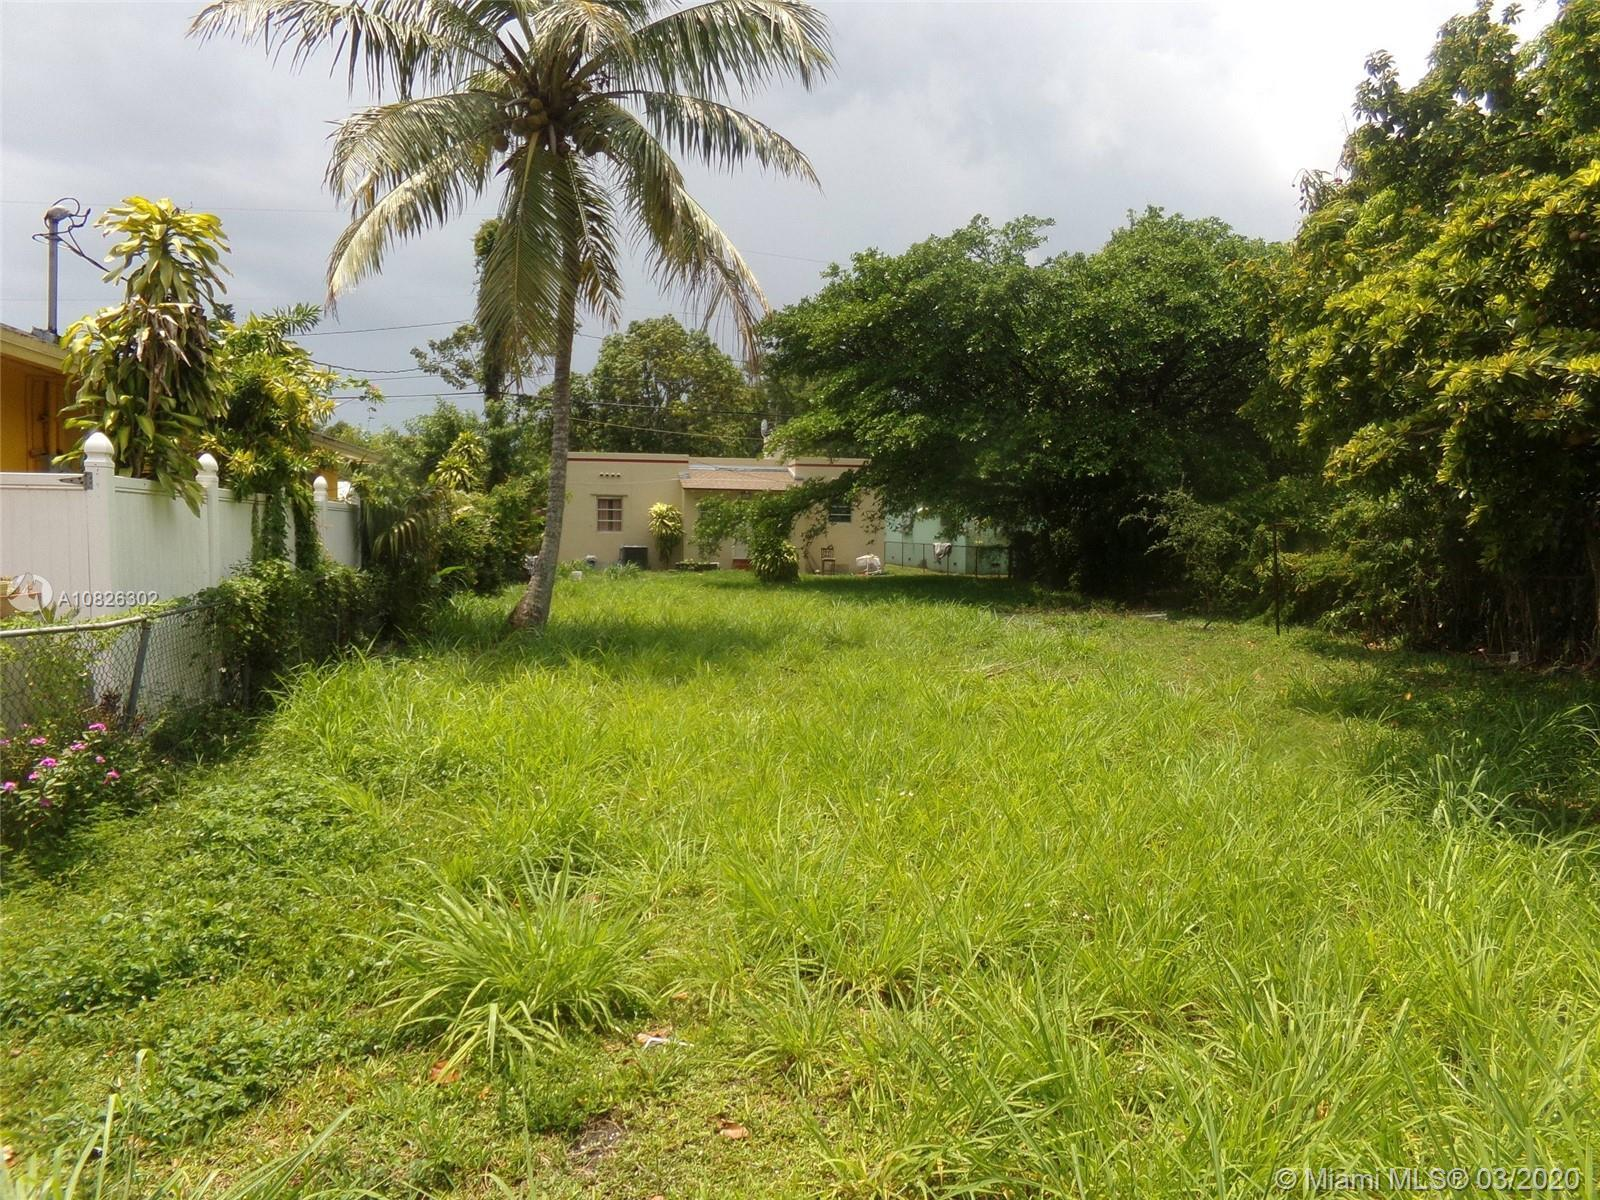 THIS PROPERTY IS LOCATED IN A CORNER LOT IN A VERY EXCLUSIVE AREA FEATURING 4 BEDROOMS WITH 3 BATHRO